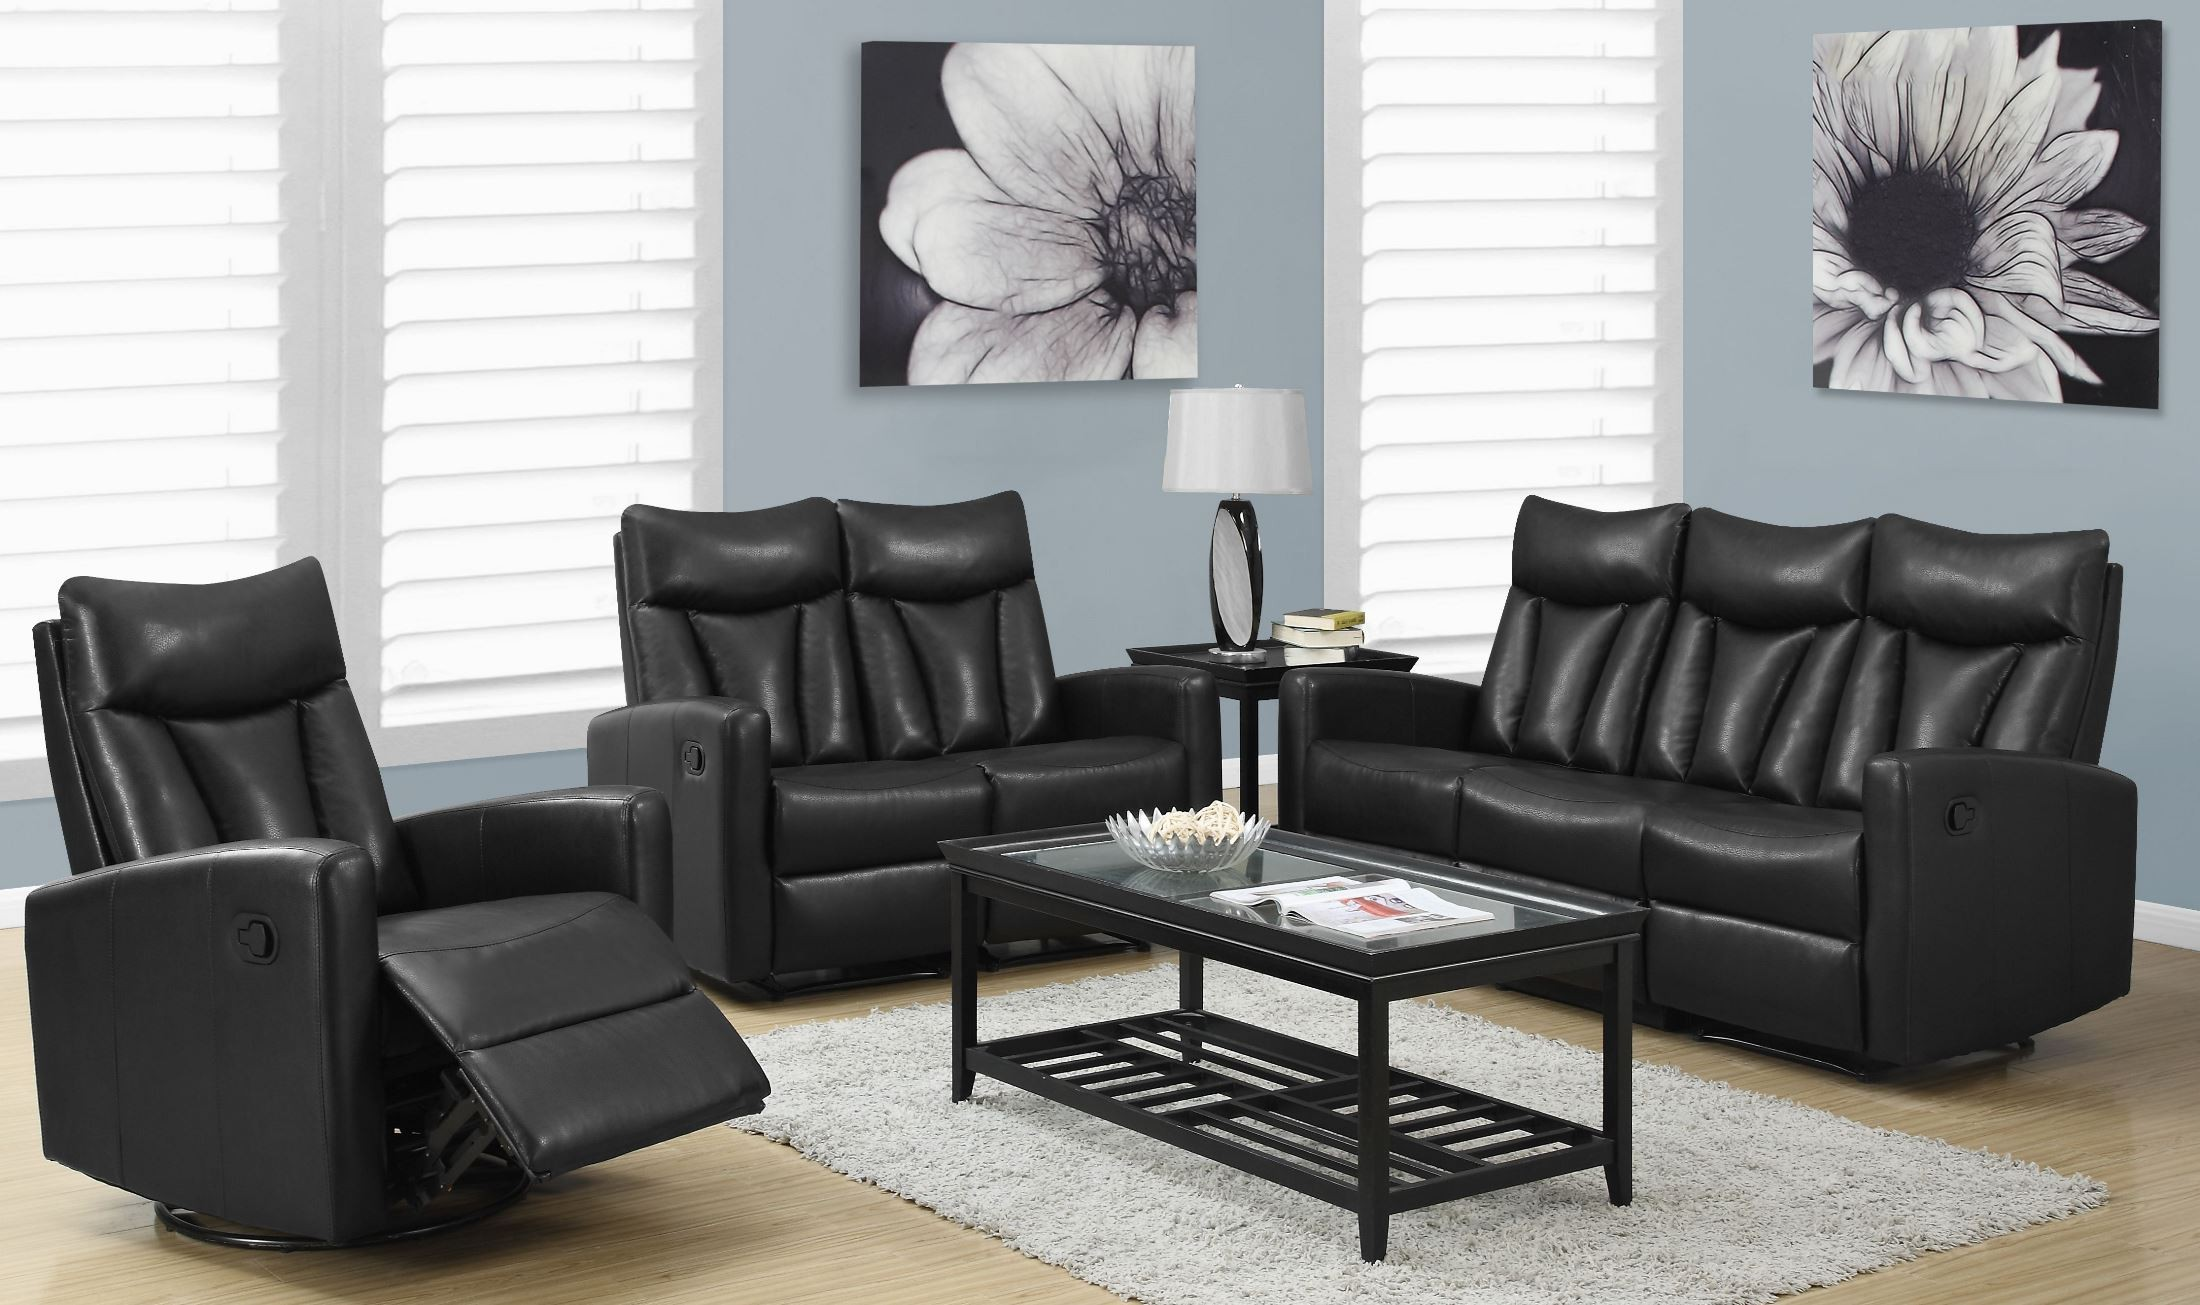 87bk 3 black bonded leather reclining living room set from for Cheap reclining living room sets